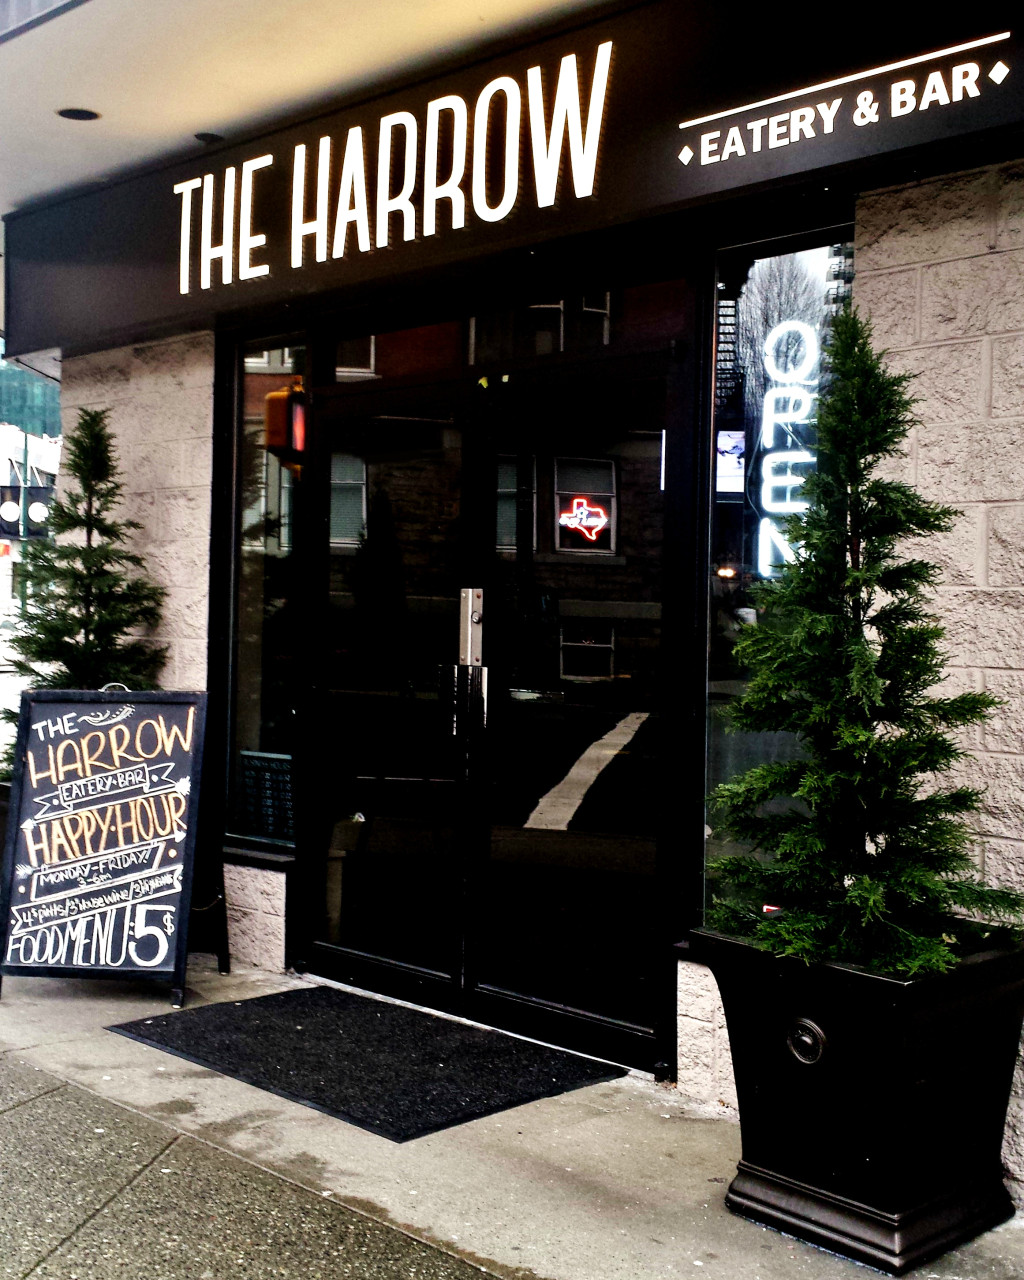 The Harrow Eatery & Pub